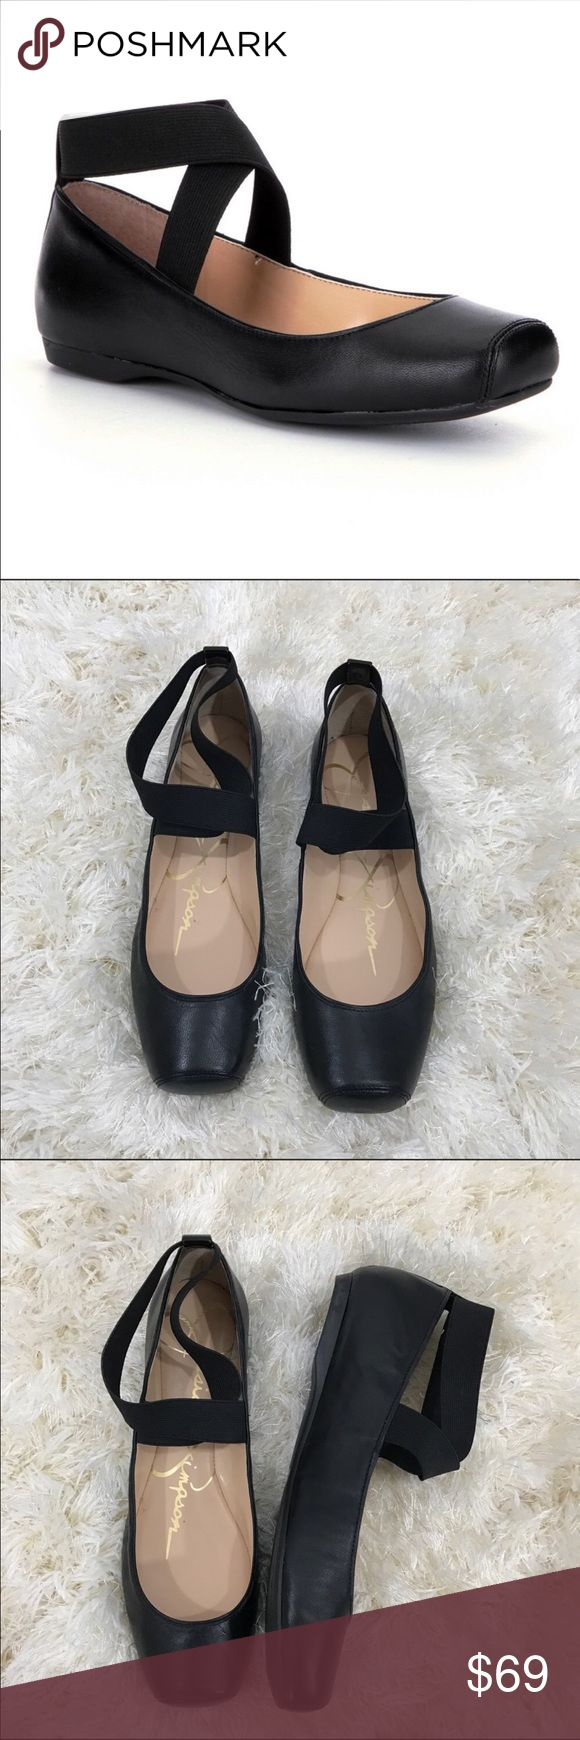 Jesica Simpson Strappy SquareToe Ballet Flat 10 From Jessica Simpson, the Mandalaye women's square-toe ballet flats feature.   Size 10, leather, elastic criss cross ankle straps  Rubber outsole 0.4 high New no box   ✅ will bundle ✅ No Trading  Poshmark rules only ‼️ Jessica Simpson Shoes Flats & Loafers